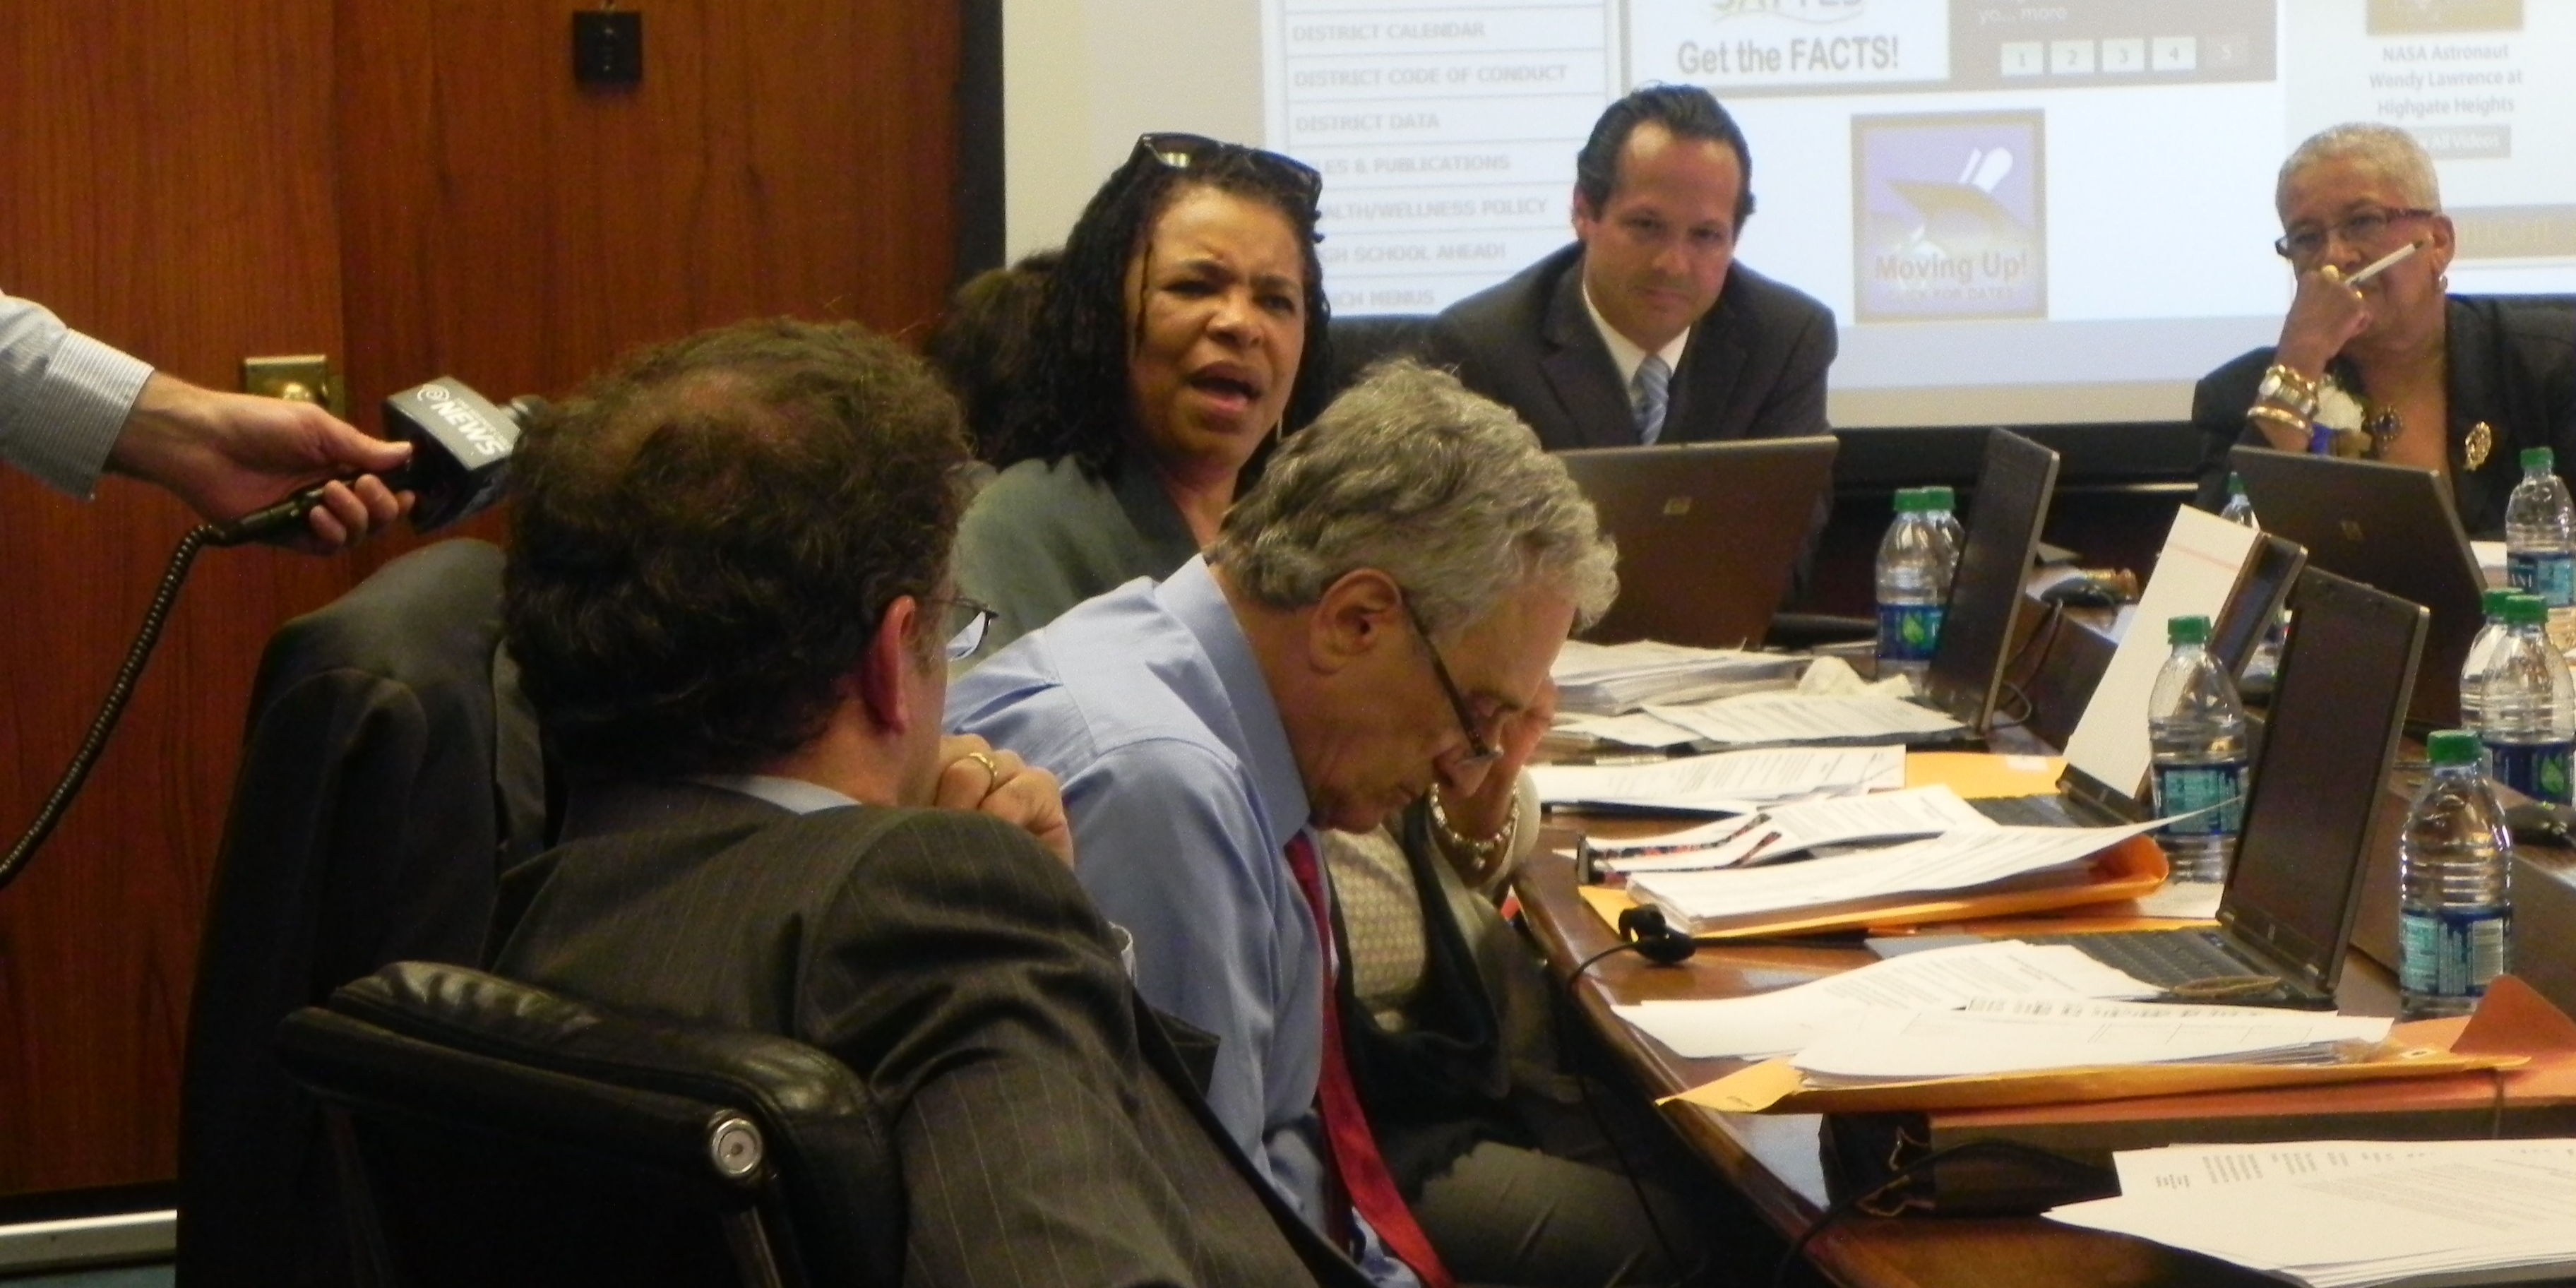 Dr. Theresa Harris-Tigg, a professor of education at Buffalo State College, exchanging words with Carl Paladino, with Interim Superintendent Will Kerezetes and Dr. Barbara Nevergold.